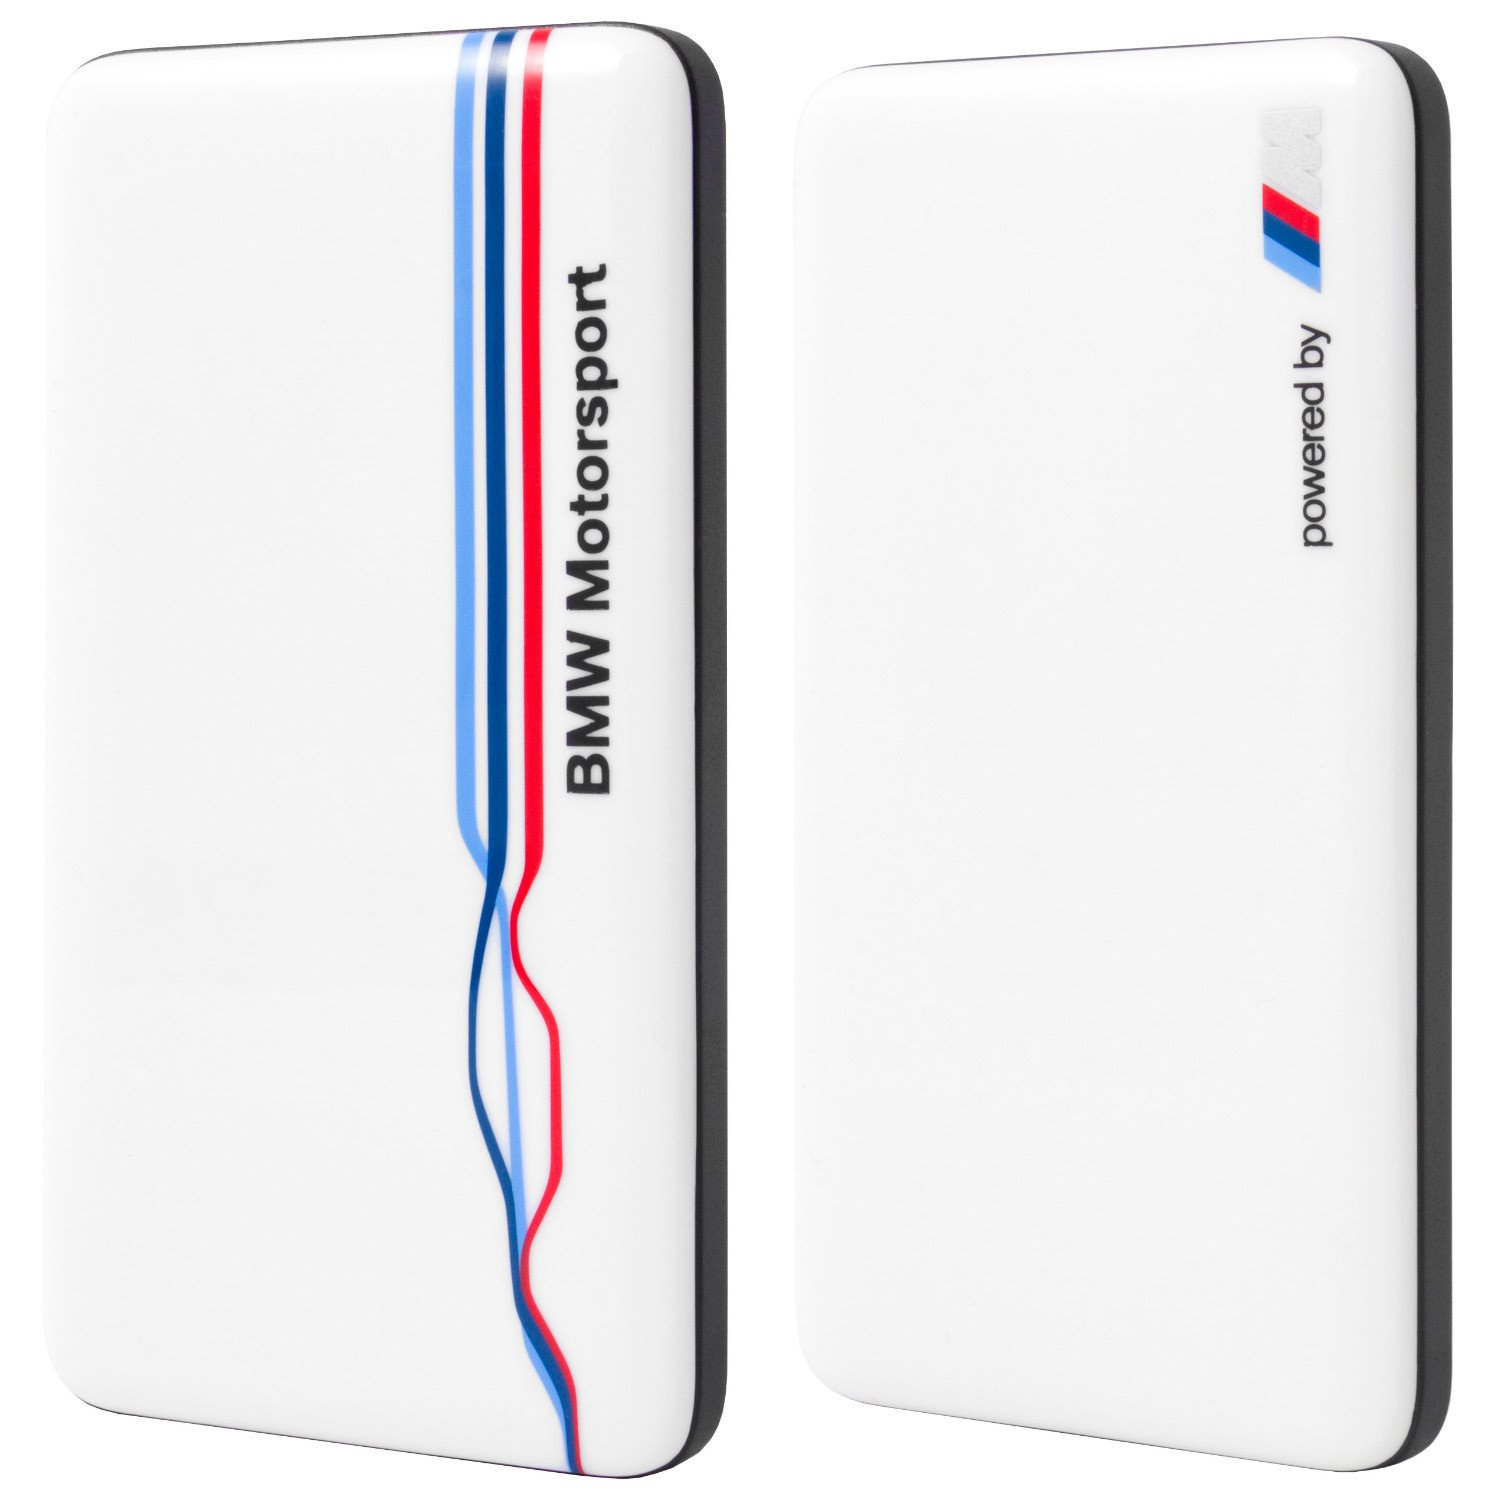 BMW Stripes Power Bank 4800mAh